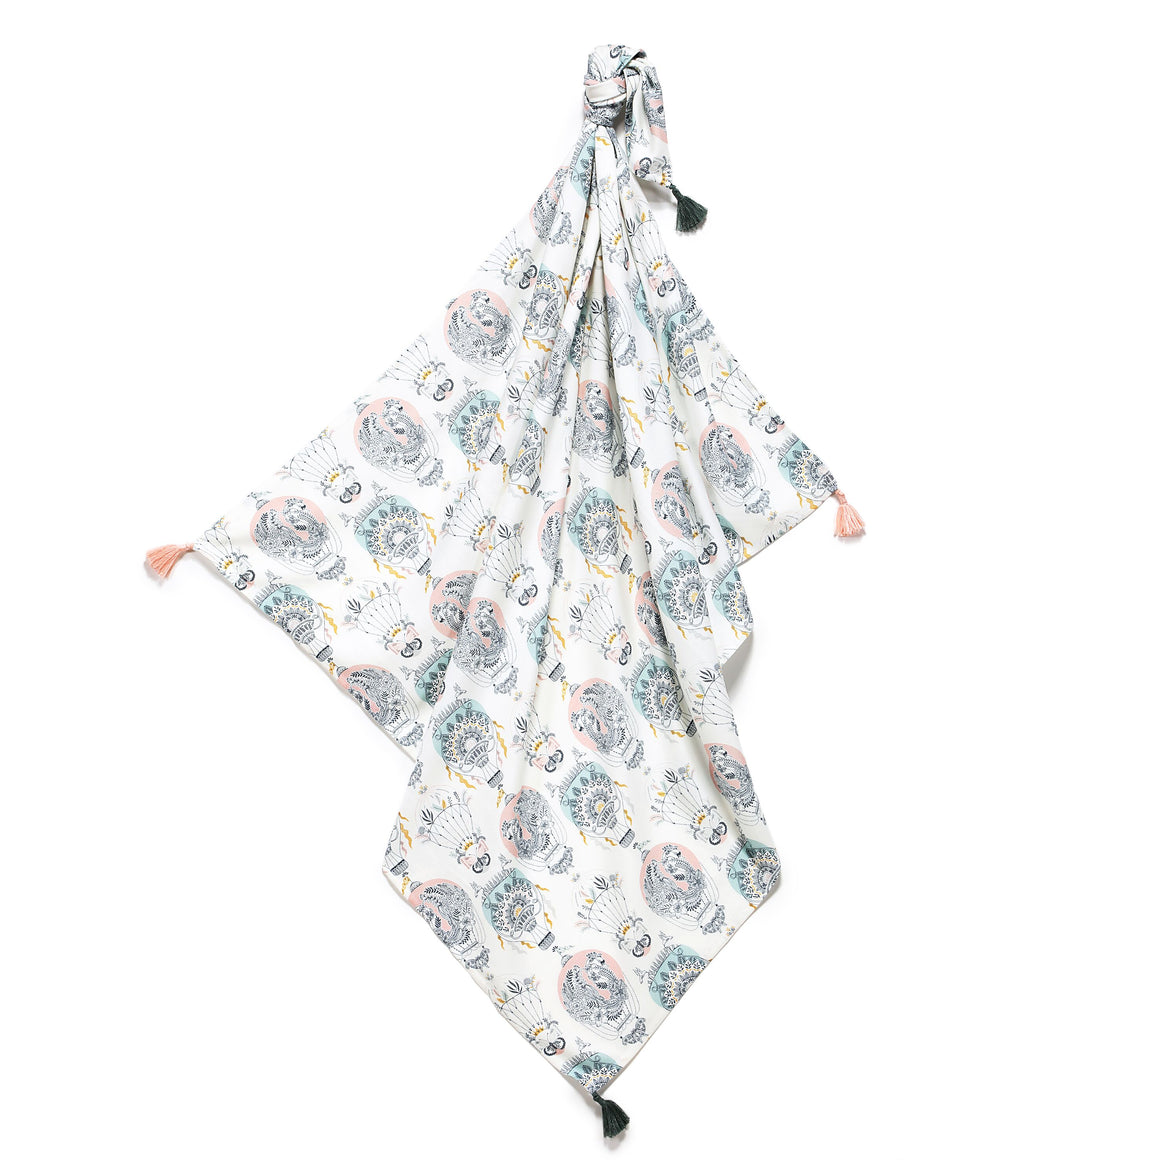 very light cooling summer bamboo blanket and swaddle for babies and children